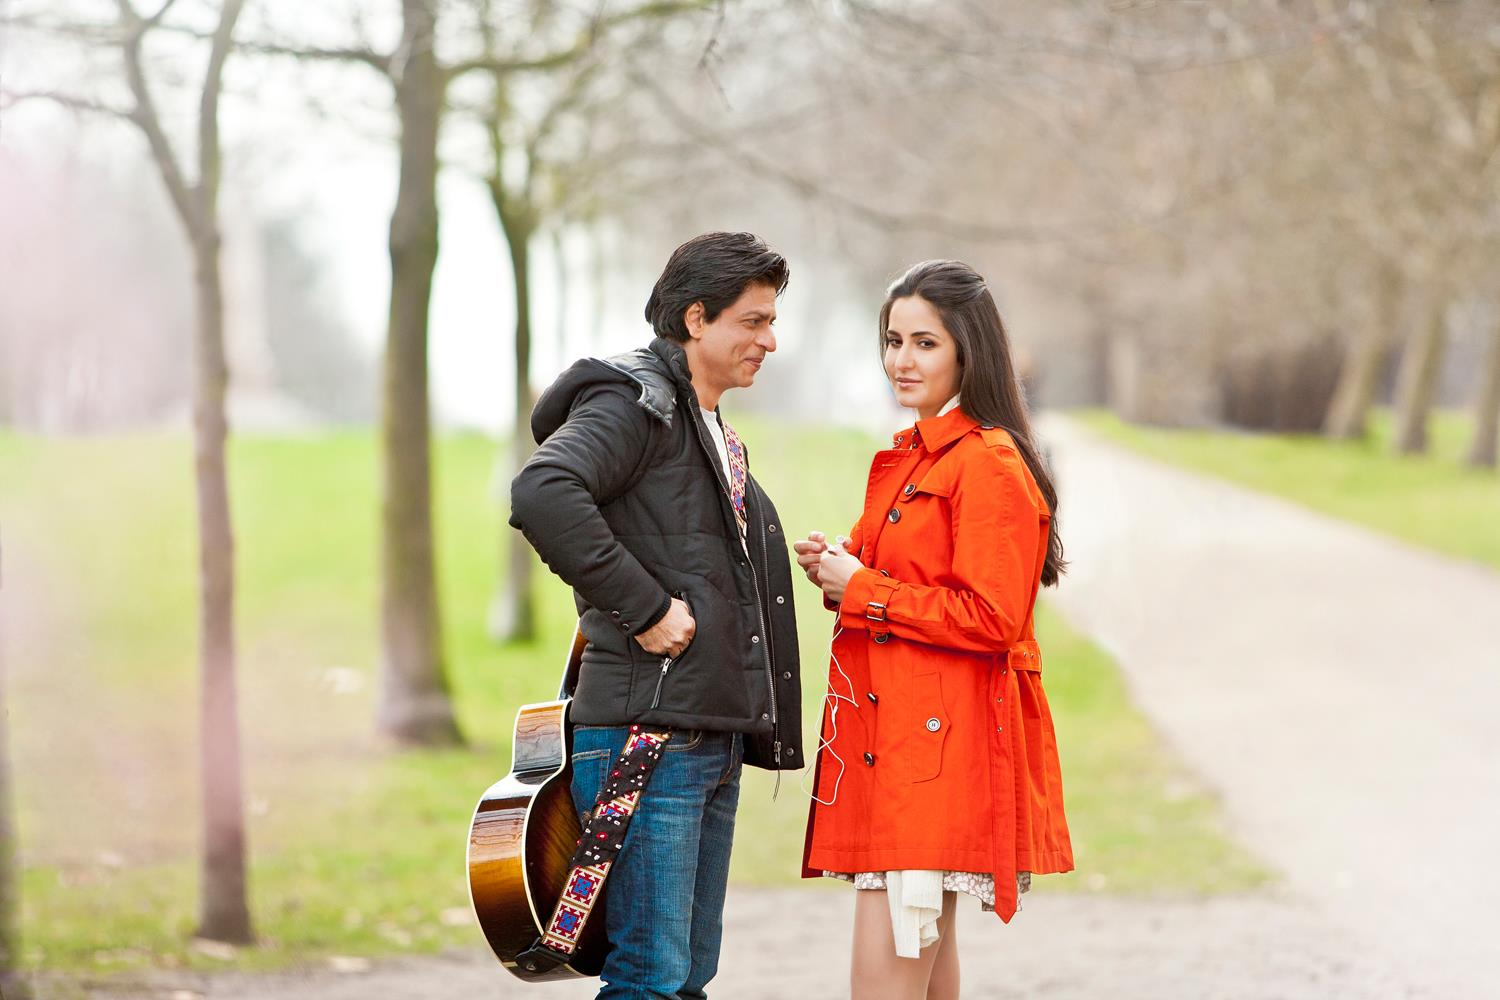 http://1.bp.blogspot.com/-xkfxc52_uy0/T1ZOo7cm5wI/AAAAAAAAElg/en6z_wYGRDY/s1600/Beautiful-Katrina-Kaif-and-Shah-Rukh-Khan-exclusive+image+from+Yash+Chopra%27s+next+untitled+project-images.jpg